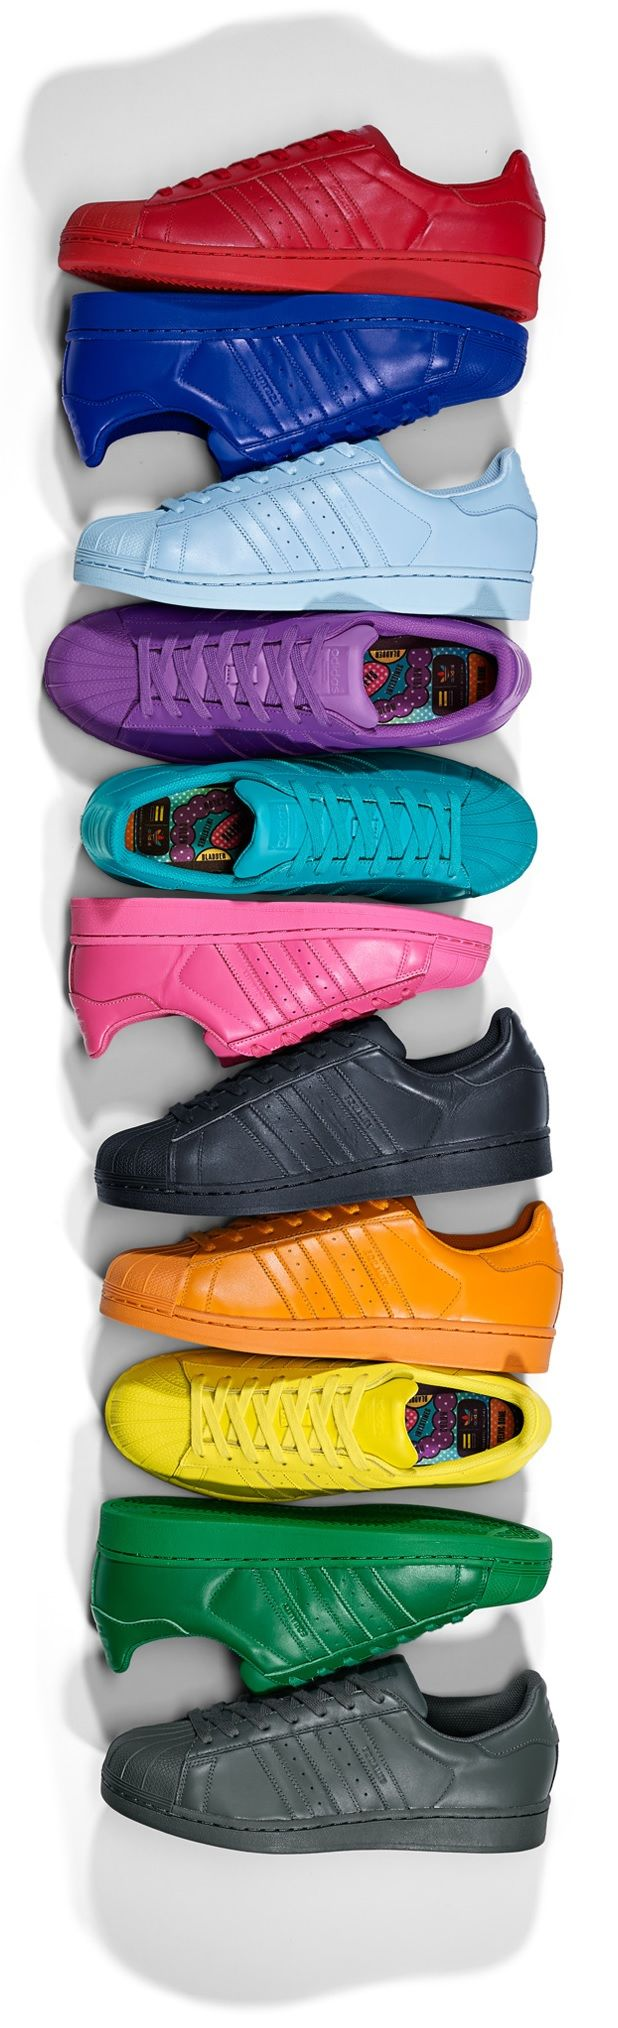 adidas superstar supercolor buy online